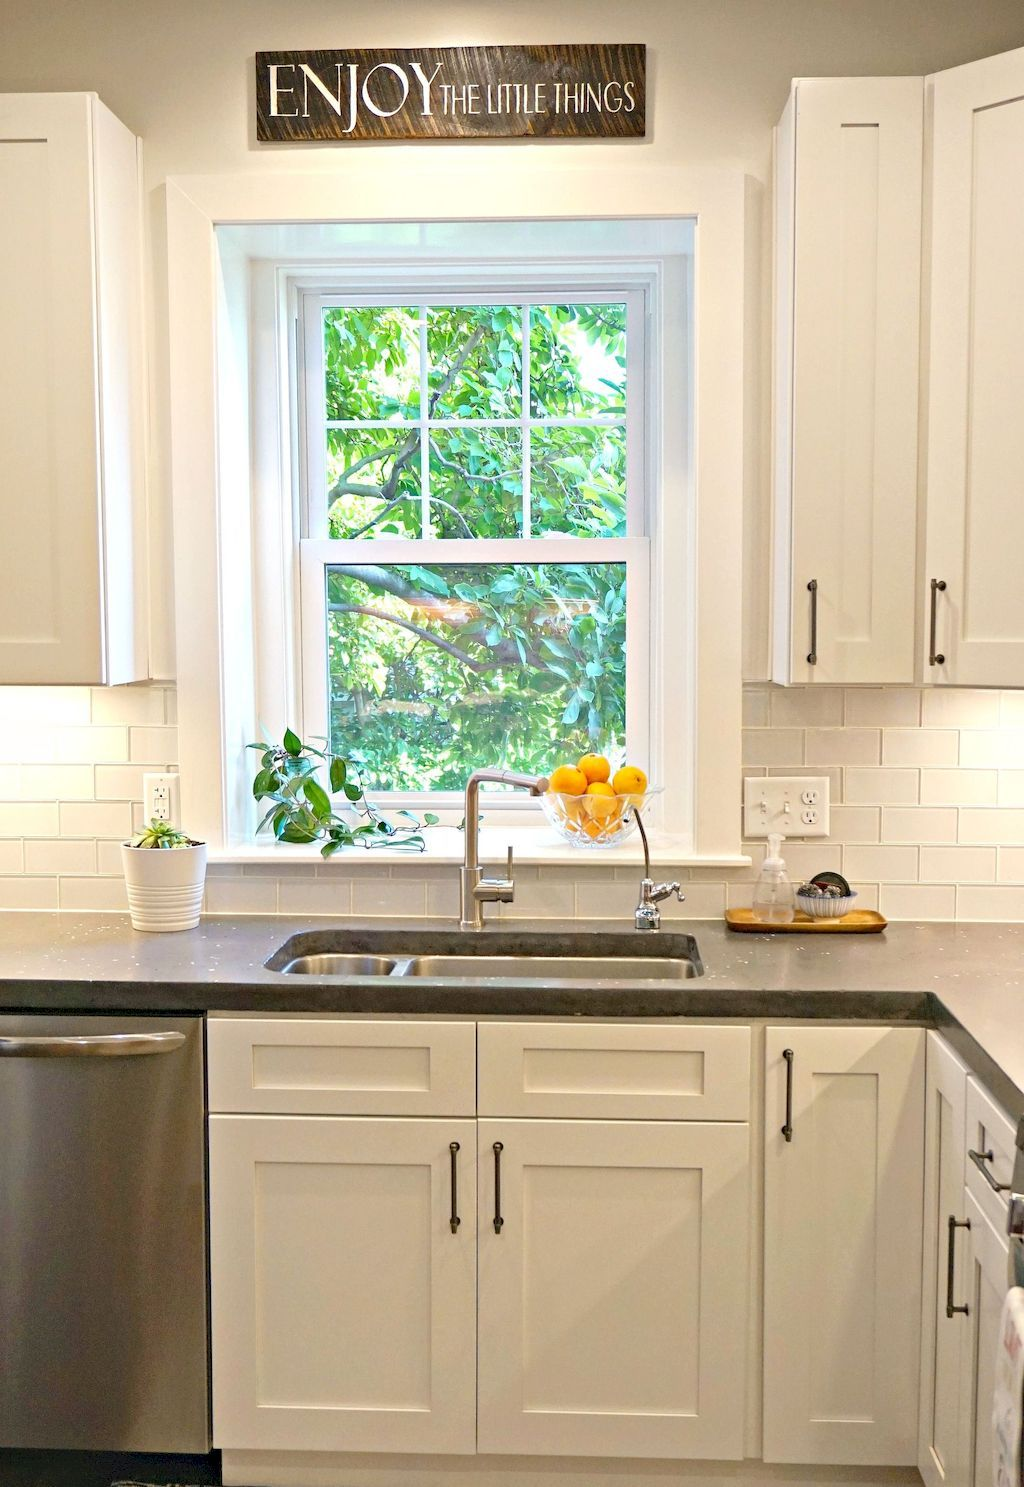 70 small apartment kitchen ideas on a budget budget friendly kitchen remodel budget kitchen on kitchen ideas on a budget id=93299